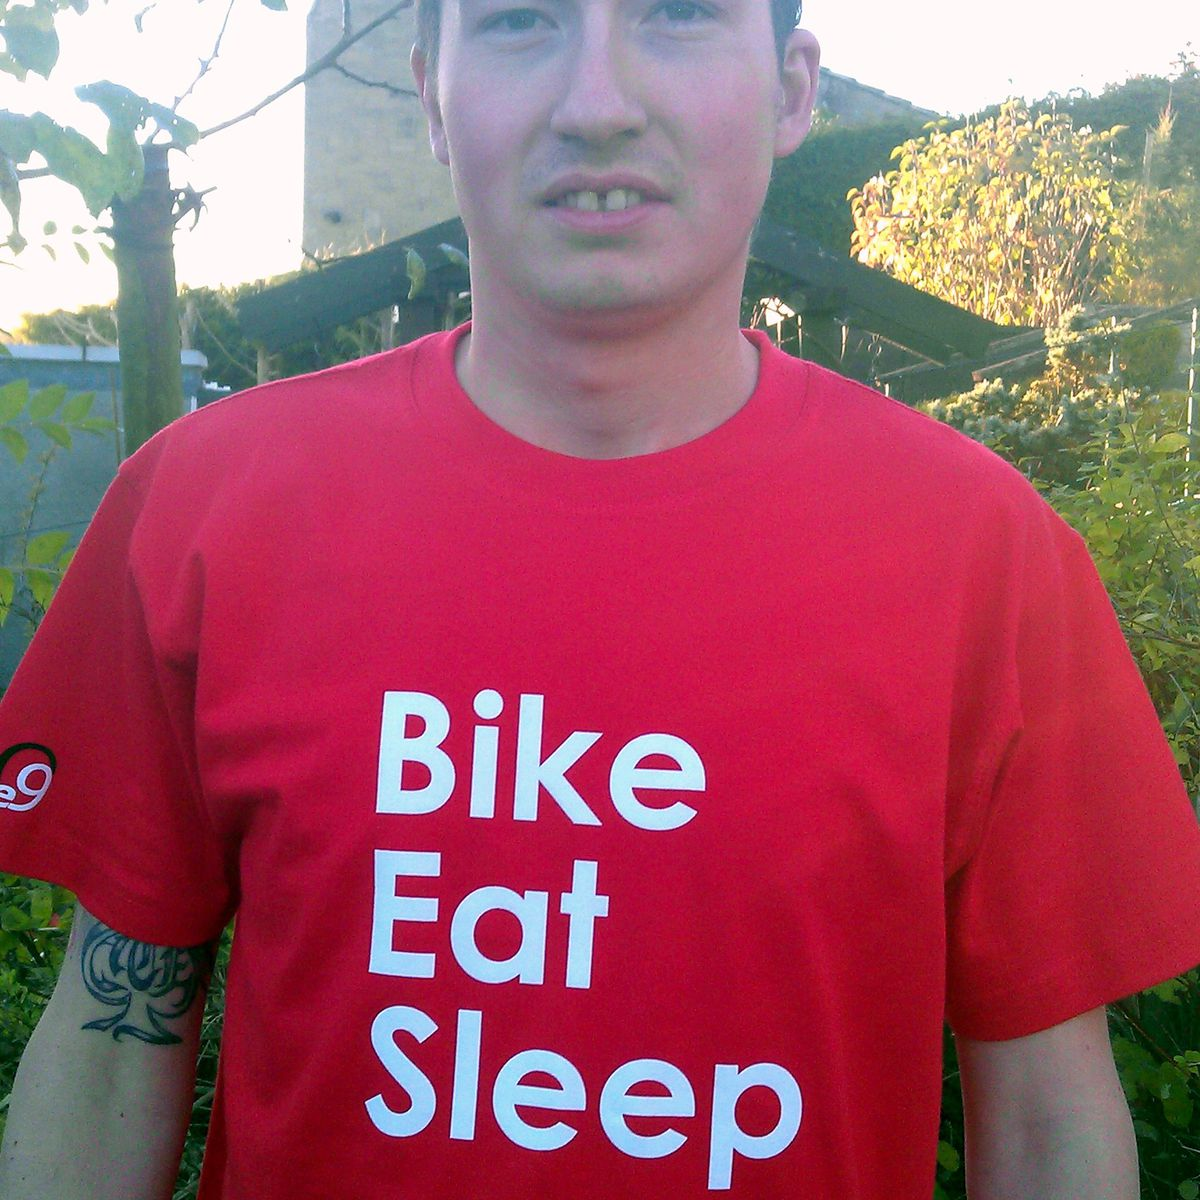 Bike Eat Sleep T-shirt - product images  of